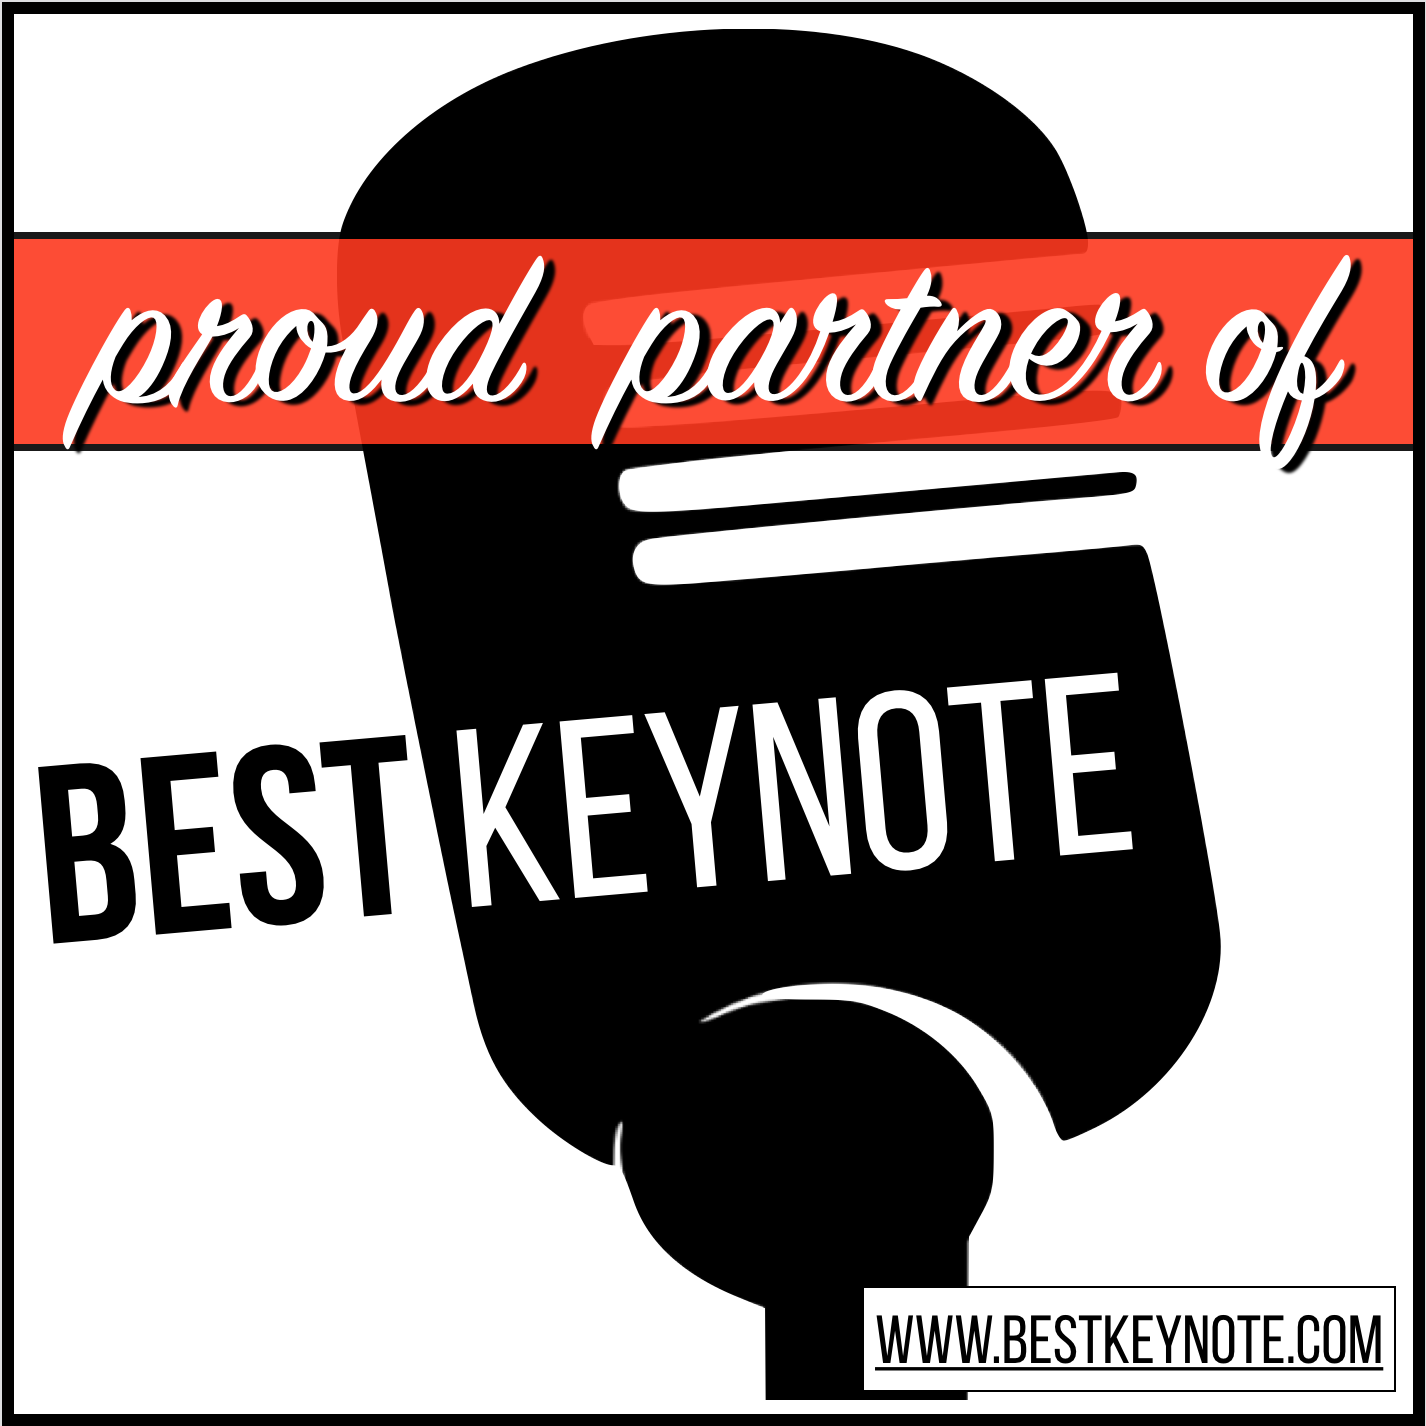 Partner of Best Keynote